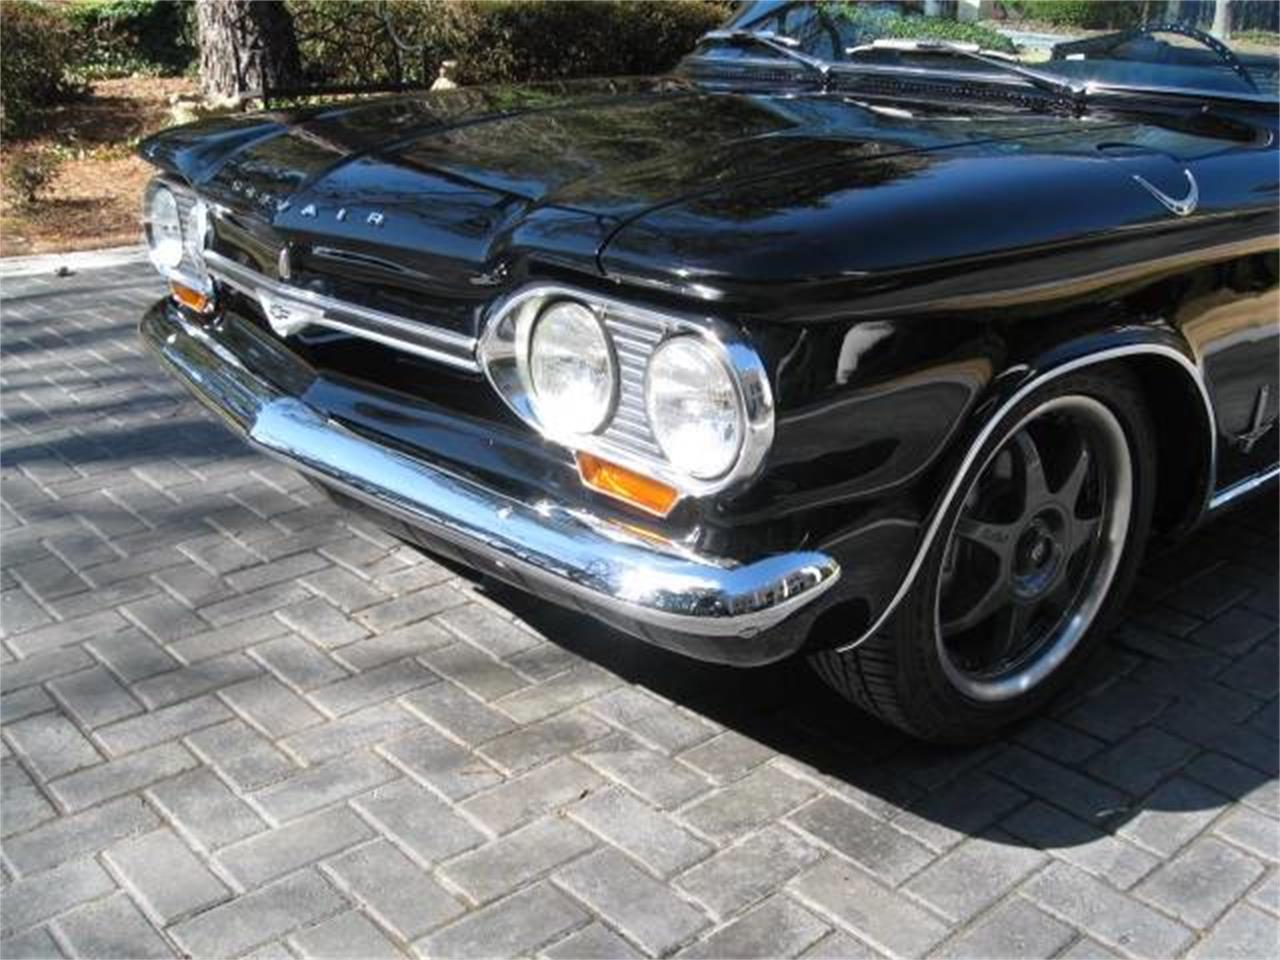 Large Picture of 1964 Corvair located in Marietta Georgia - $26,950.00 Offered by Classic Investment LTD - MTR7